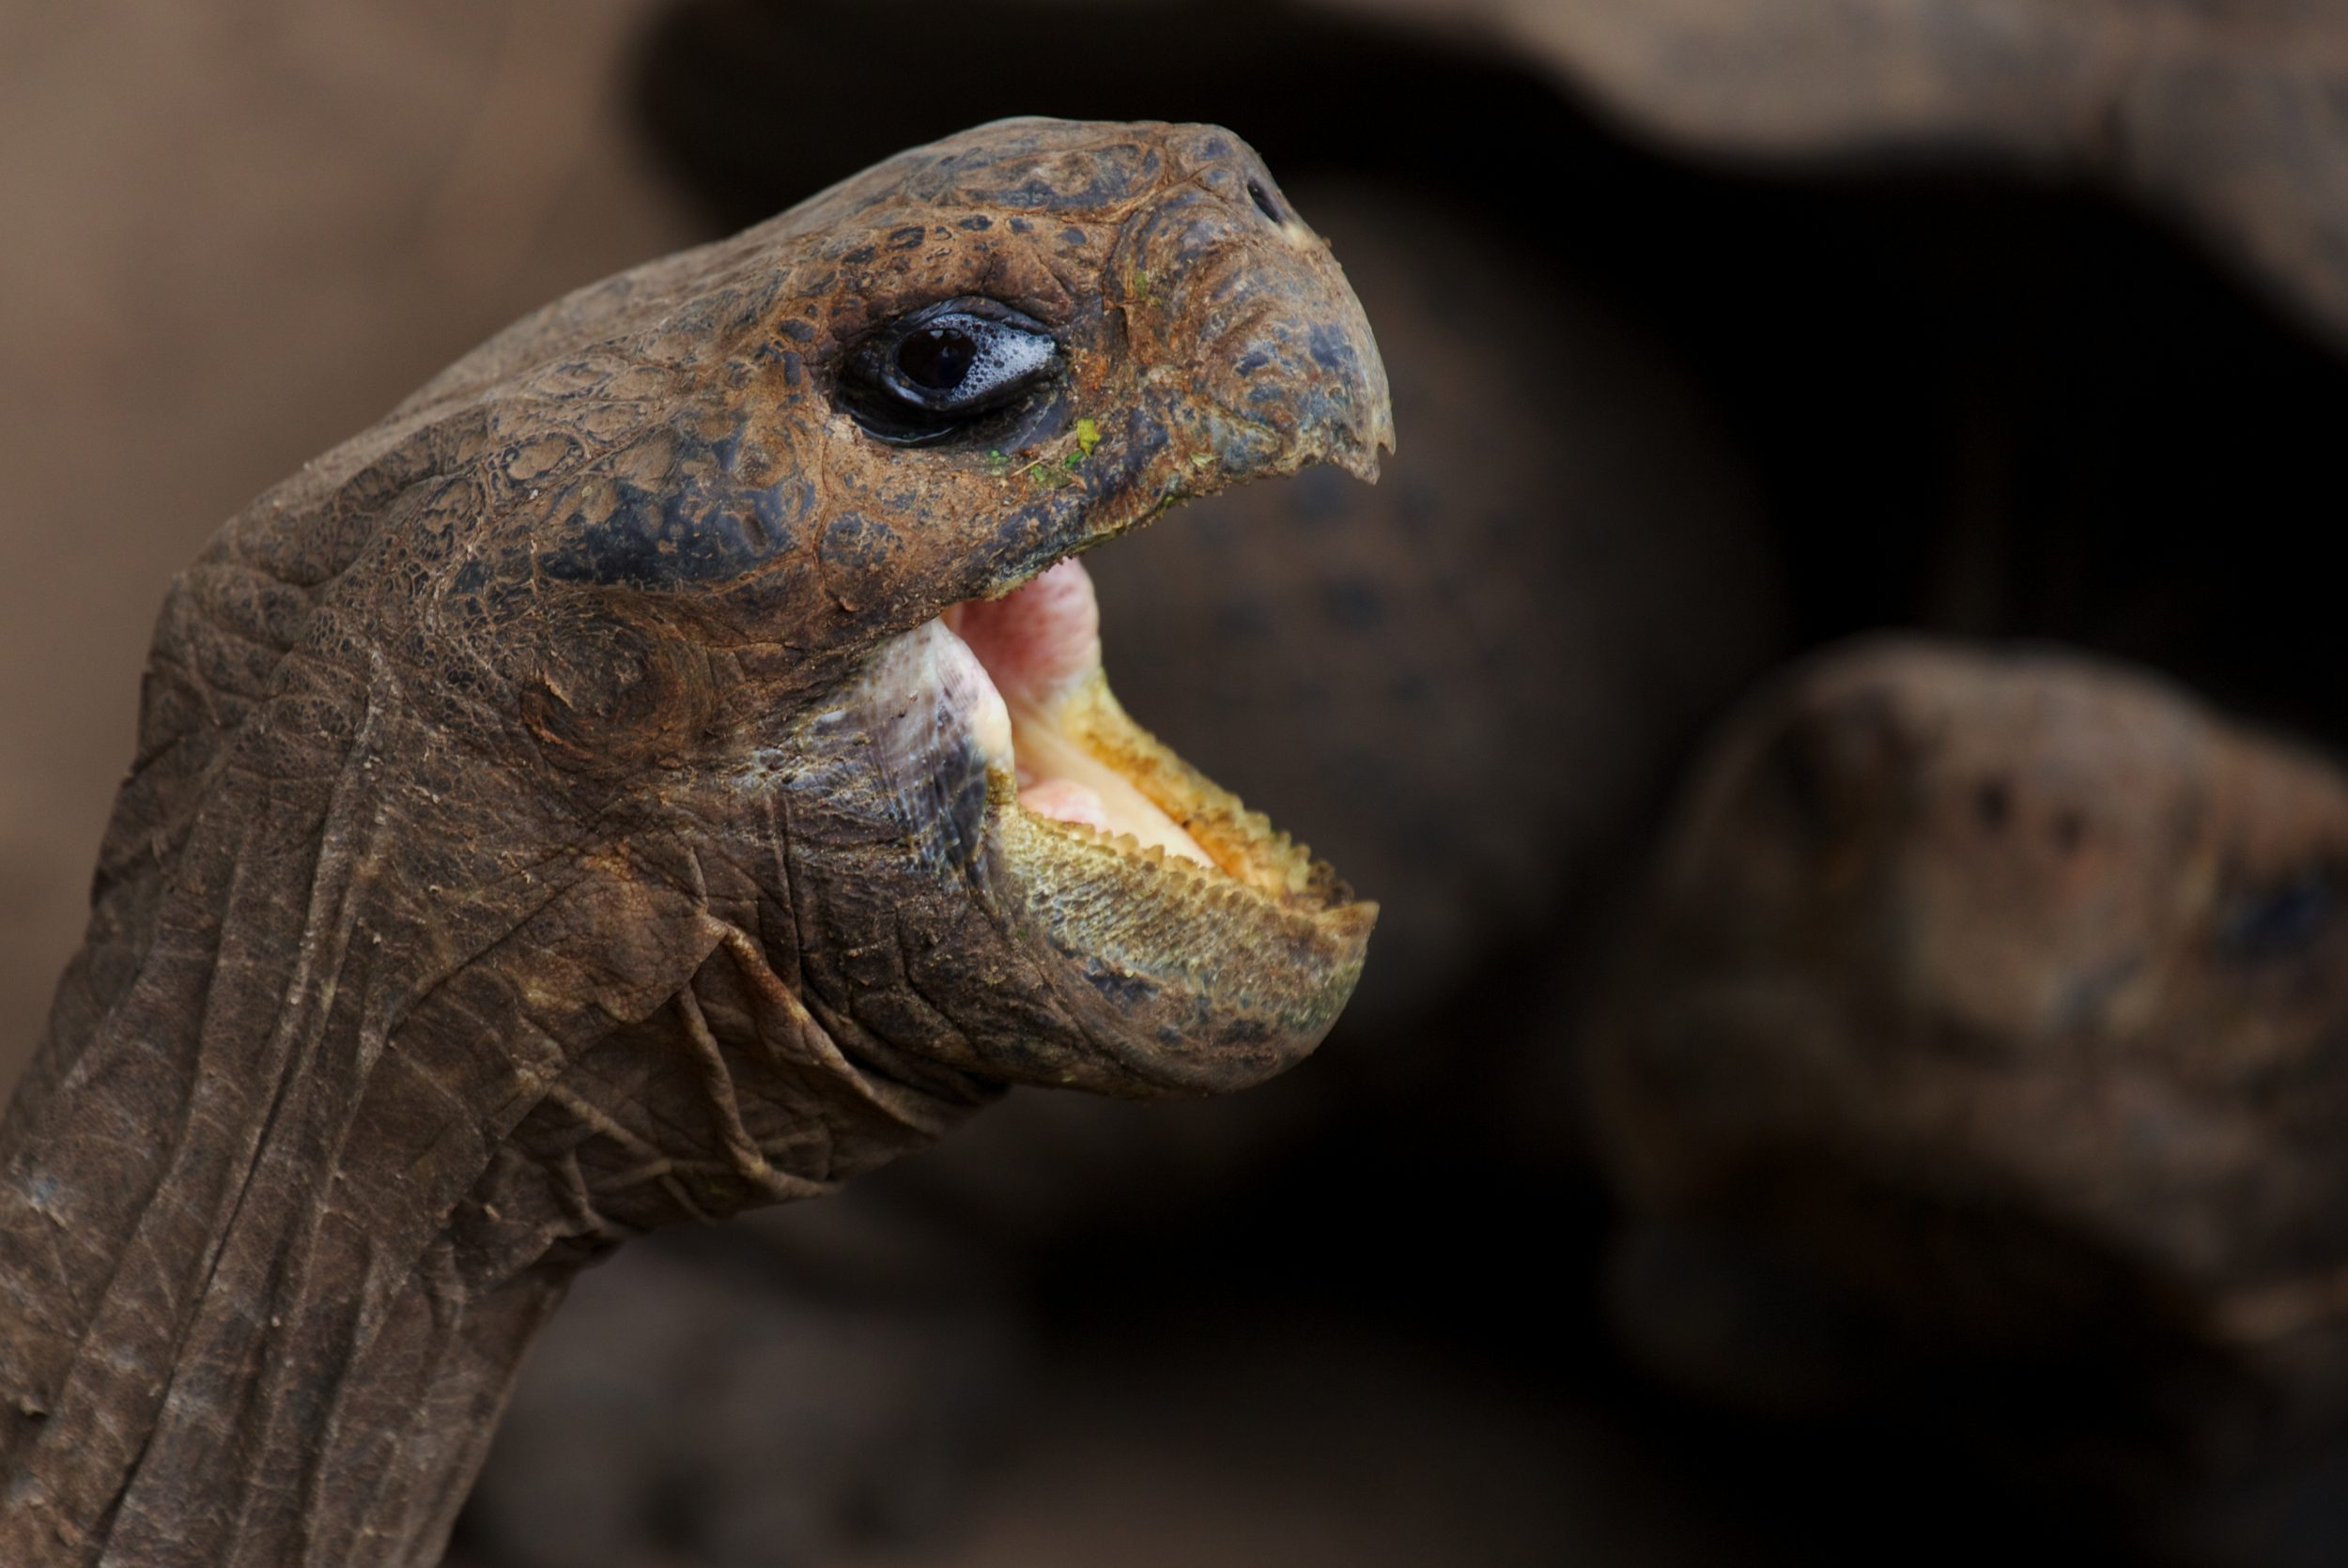 The head of a Galapagos tortoise